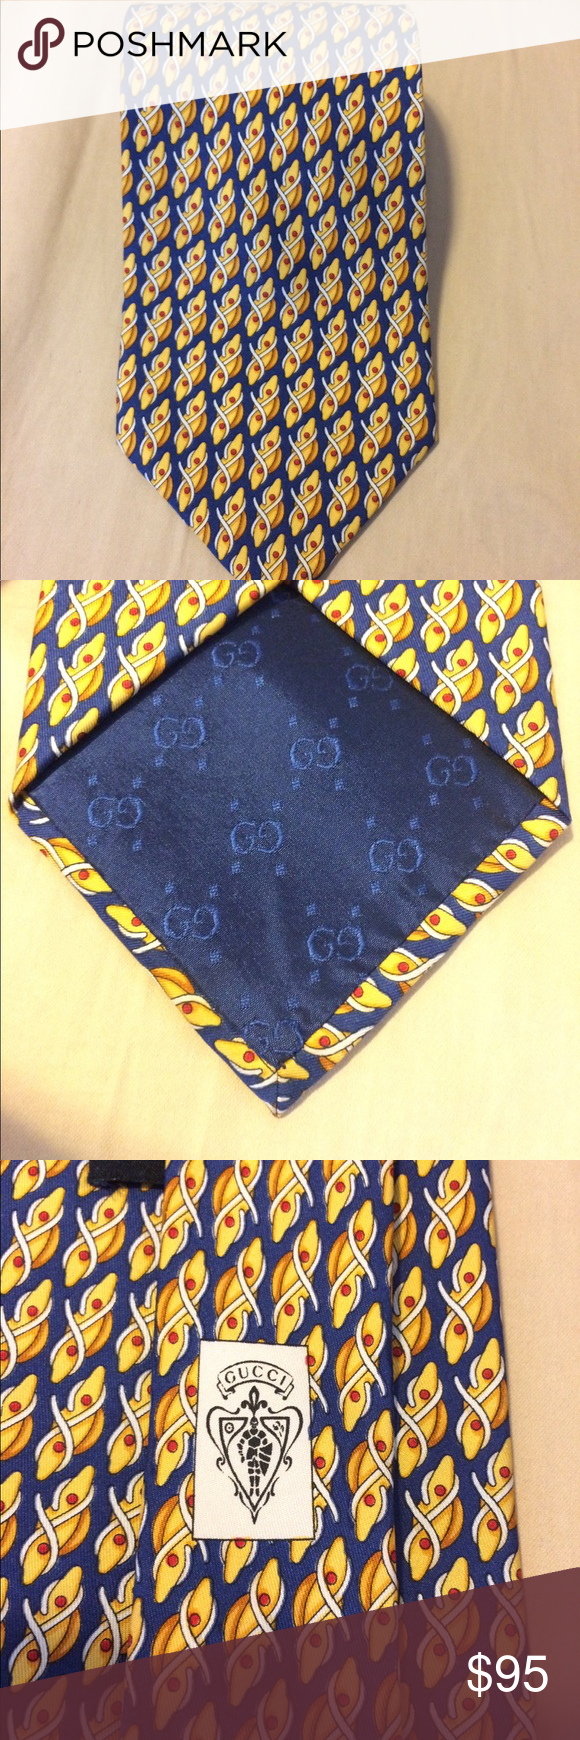 """8eb867df709 Vintage Gucci tie """"cleats rope"""" navy blue yellow NWT only worn once. Please  view photos. Thank you Gucci Accessories Ties"""